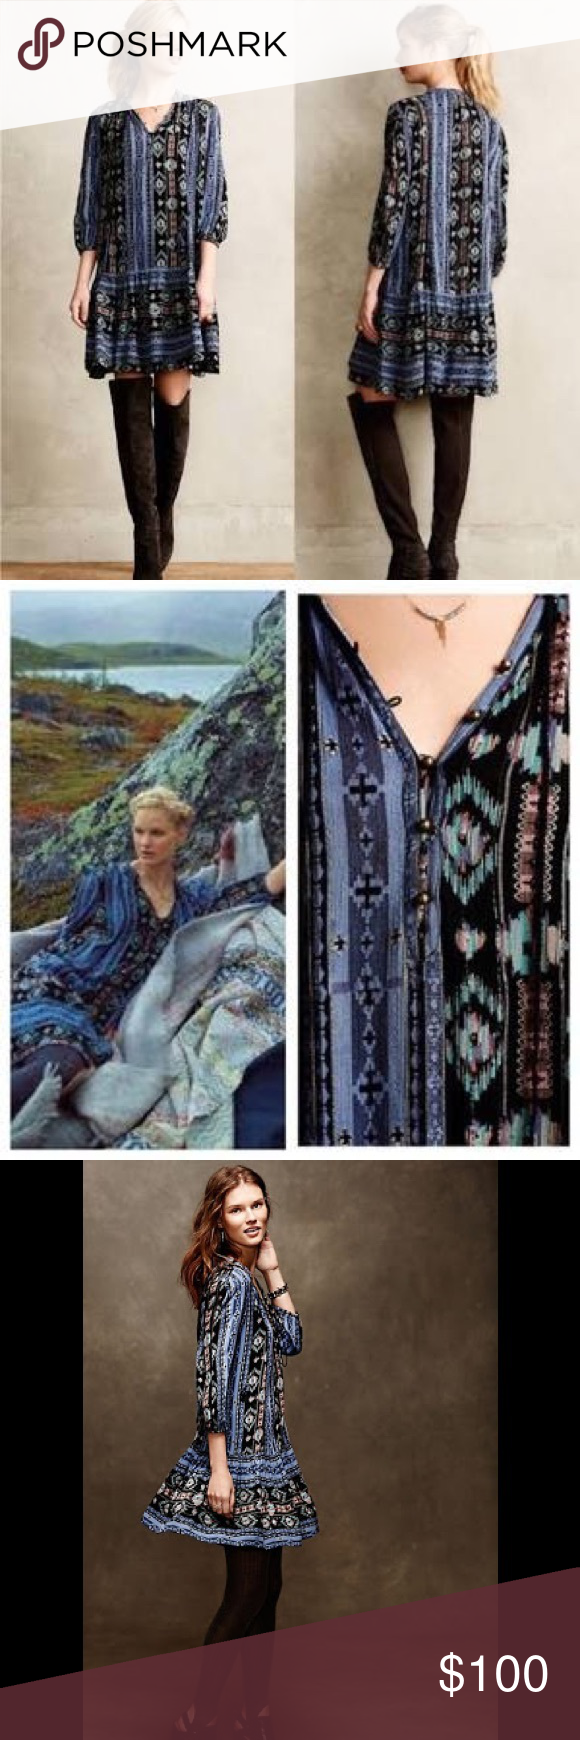 2c1e530da13 Anthropologie winter moon boho dress Anthropologie Holding Horses winter  moon dress or tunic. Super cute boho look. Has southwestern print and  tassel tie on ...